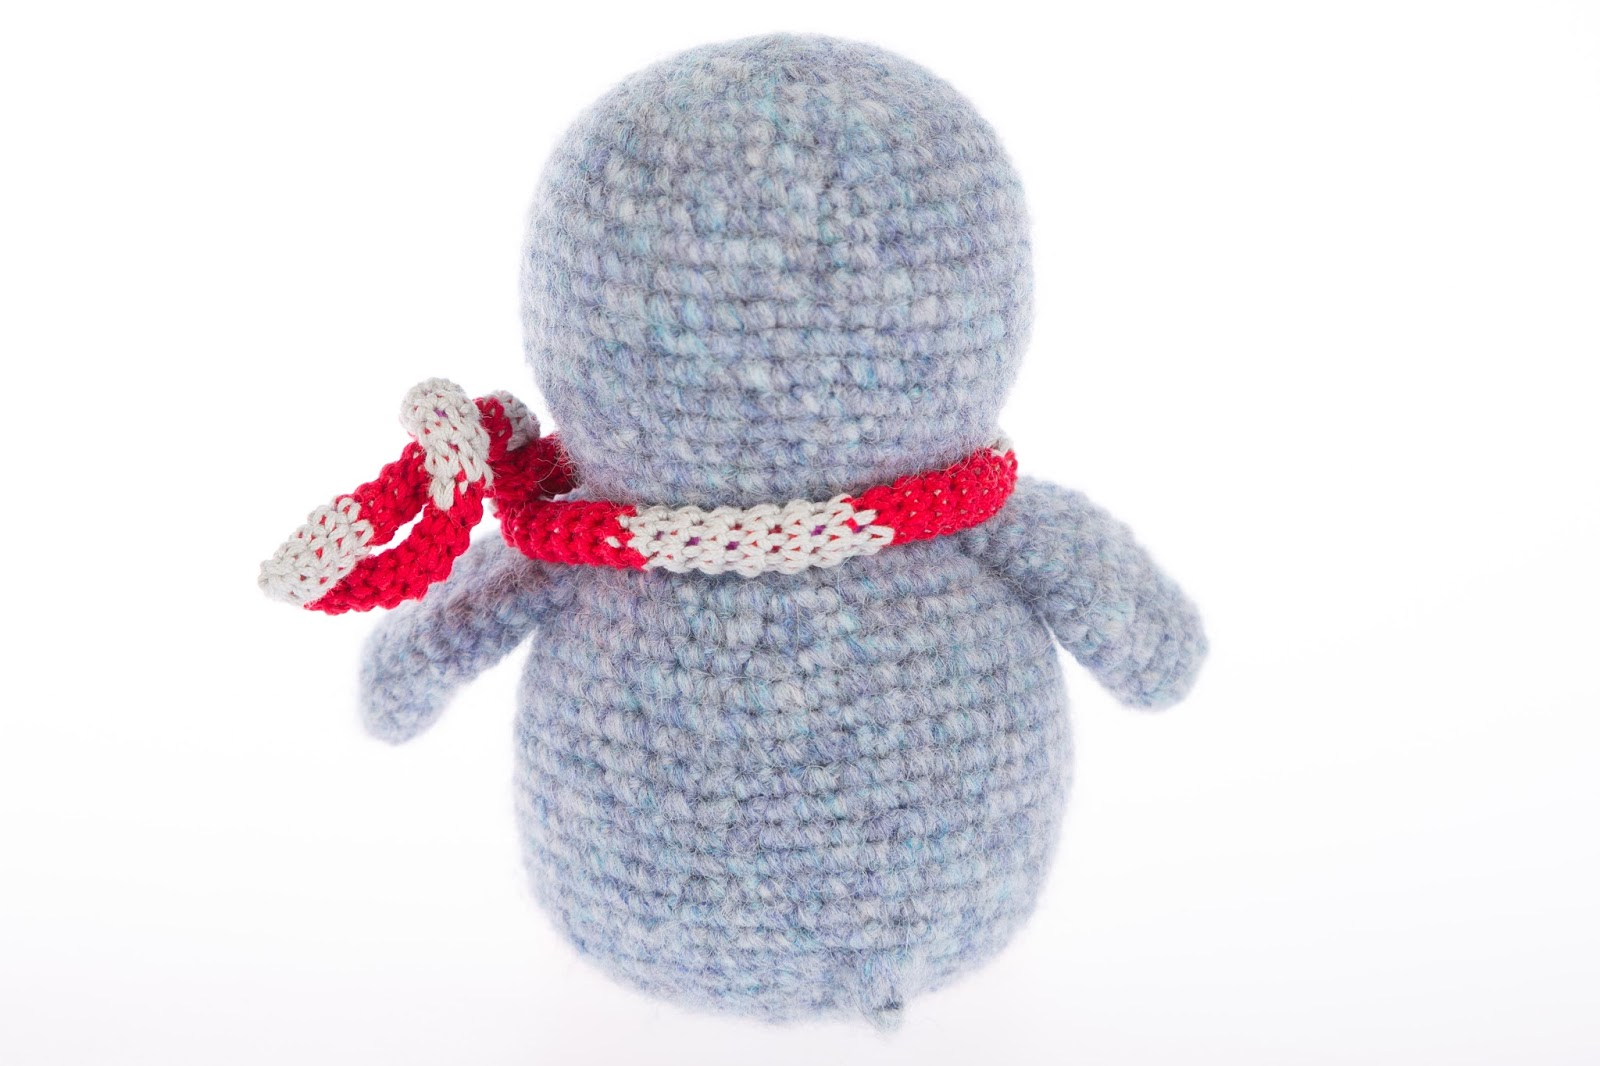 Amigurumi Penguin Pattern : HAPPYAMIGURUMI: Arnold the Penguin - New Amigurumi Crochet ...